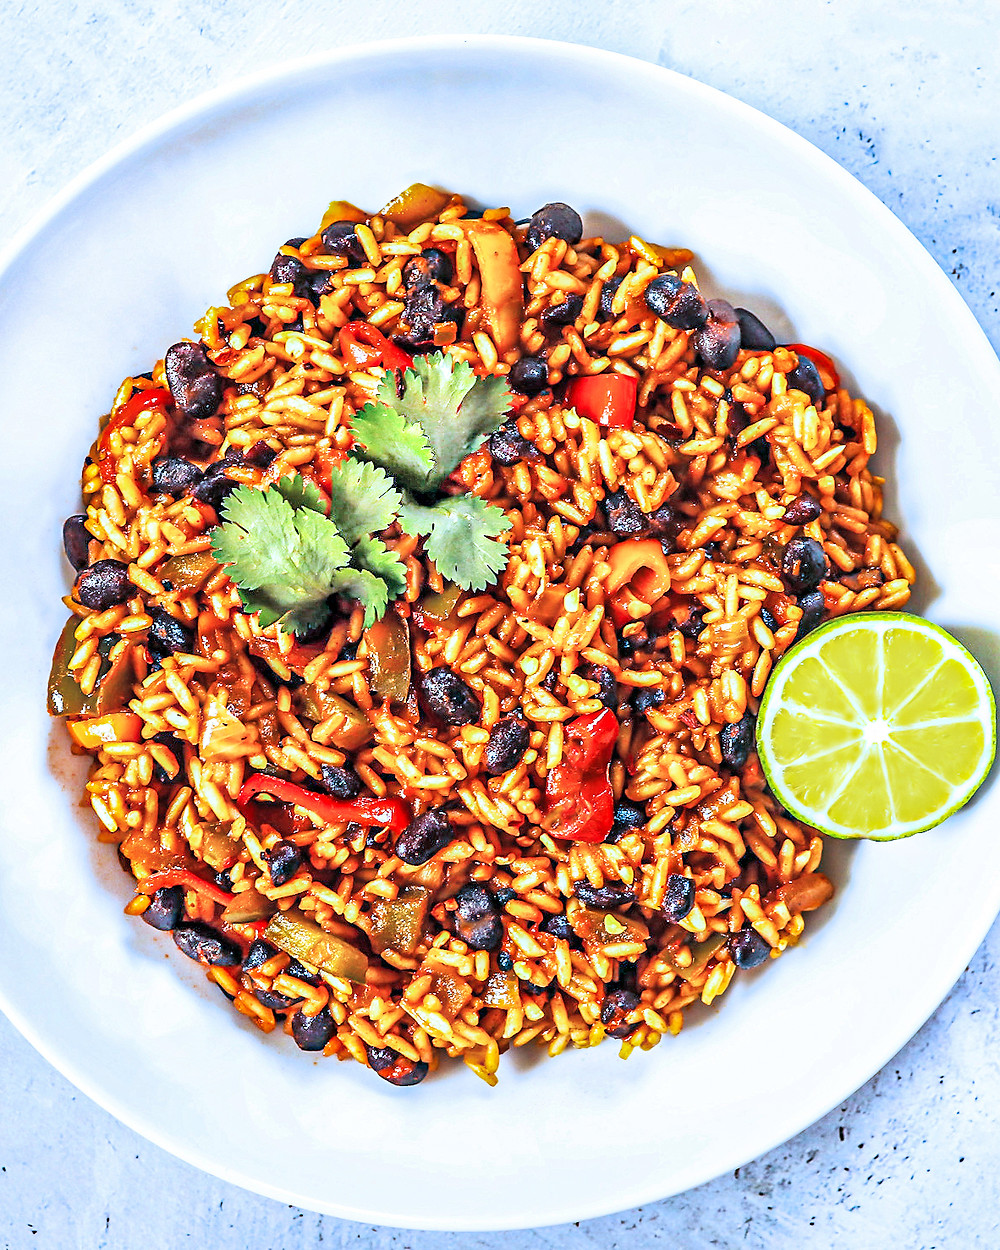 Spicy Rice & Beans